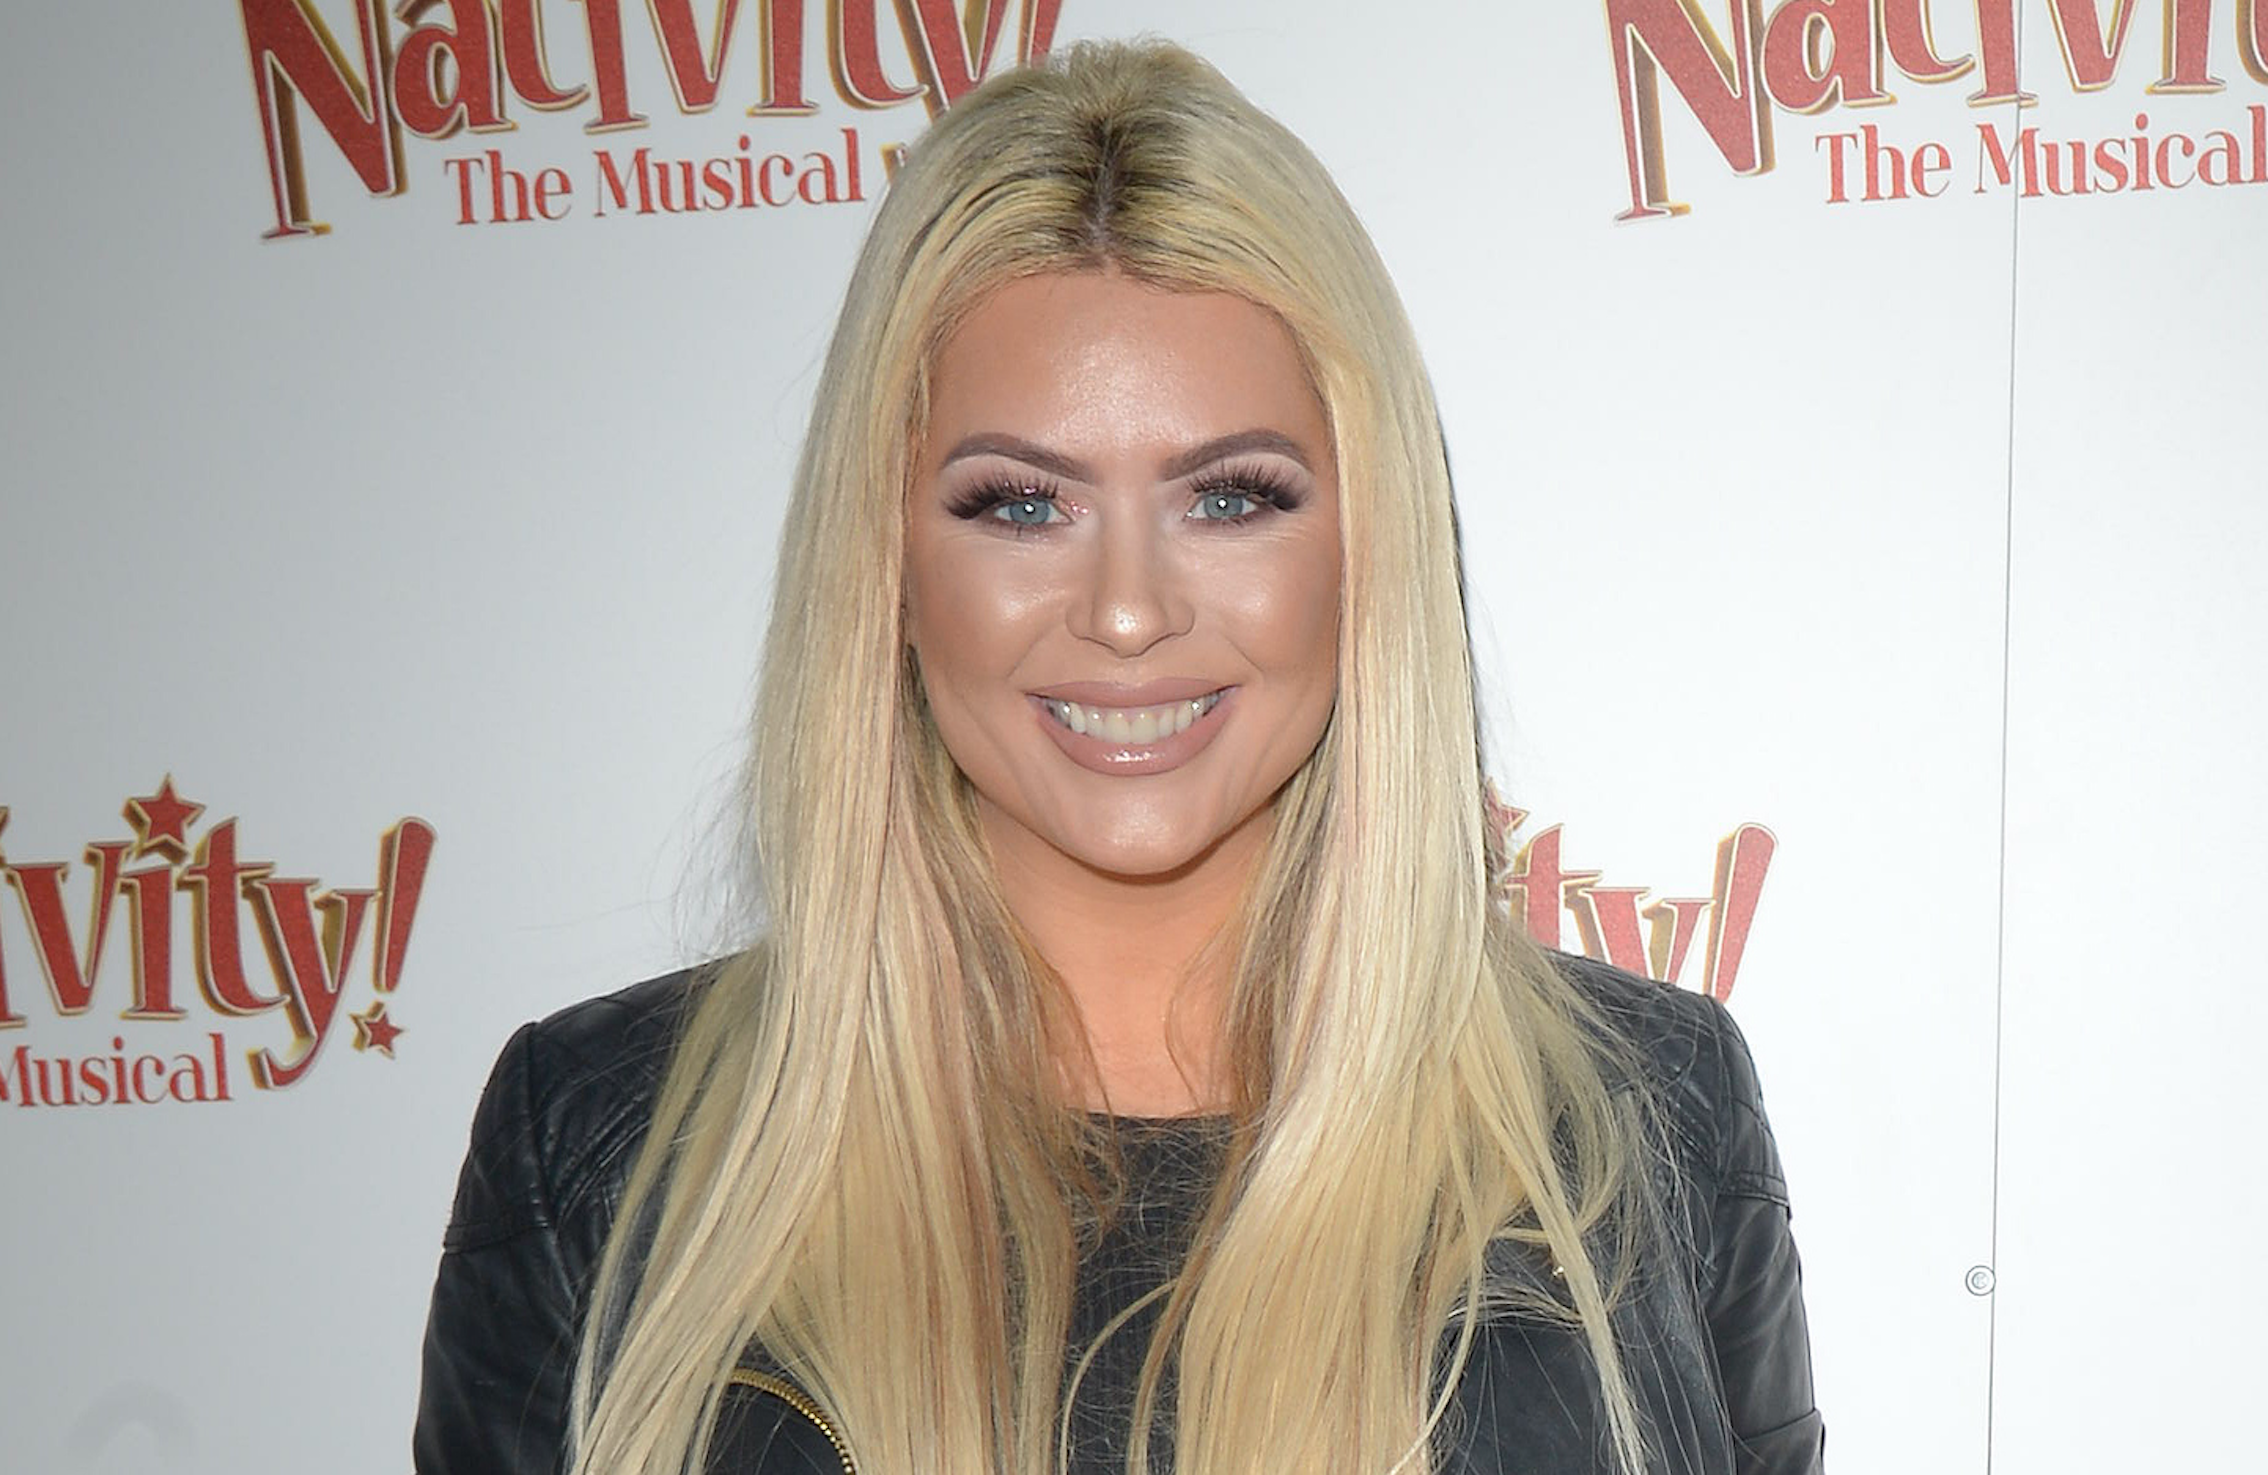 Nicola McLean reveals she was sexually assaulted by a masseur in her own home